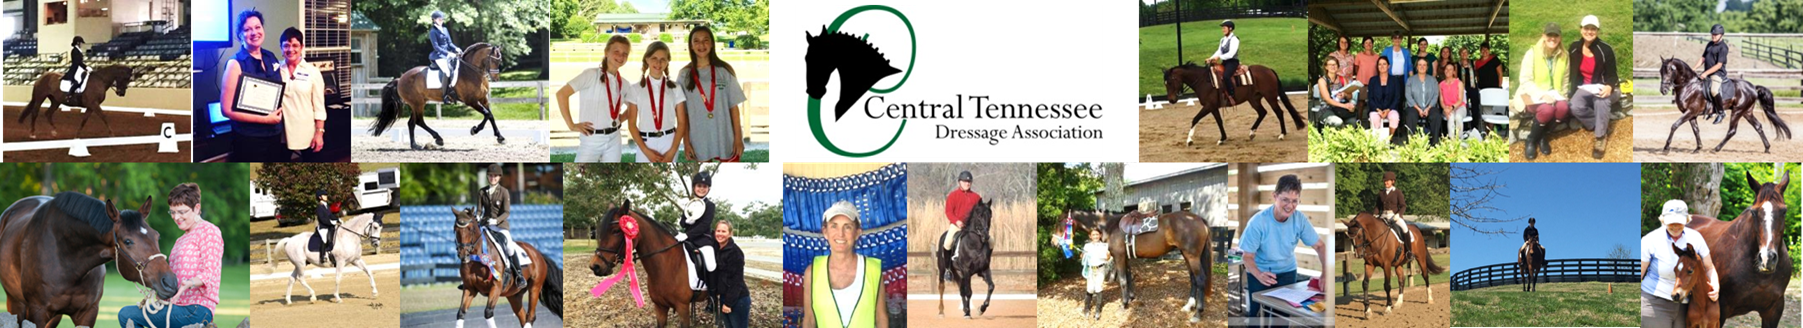 CTDA – Central Tennessee Dressage Association